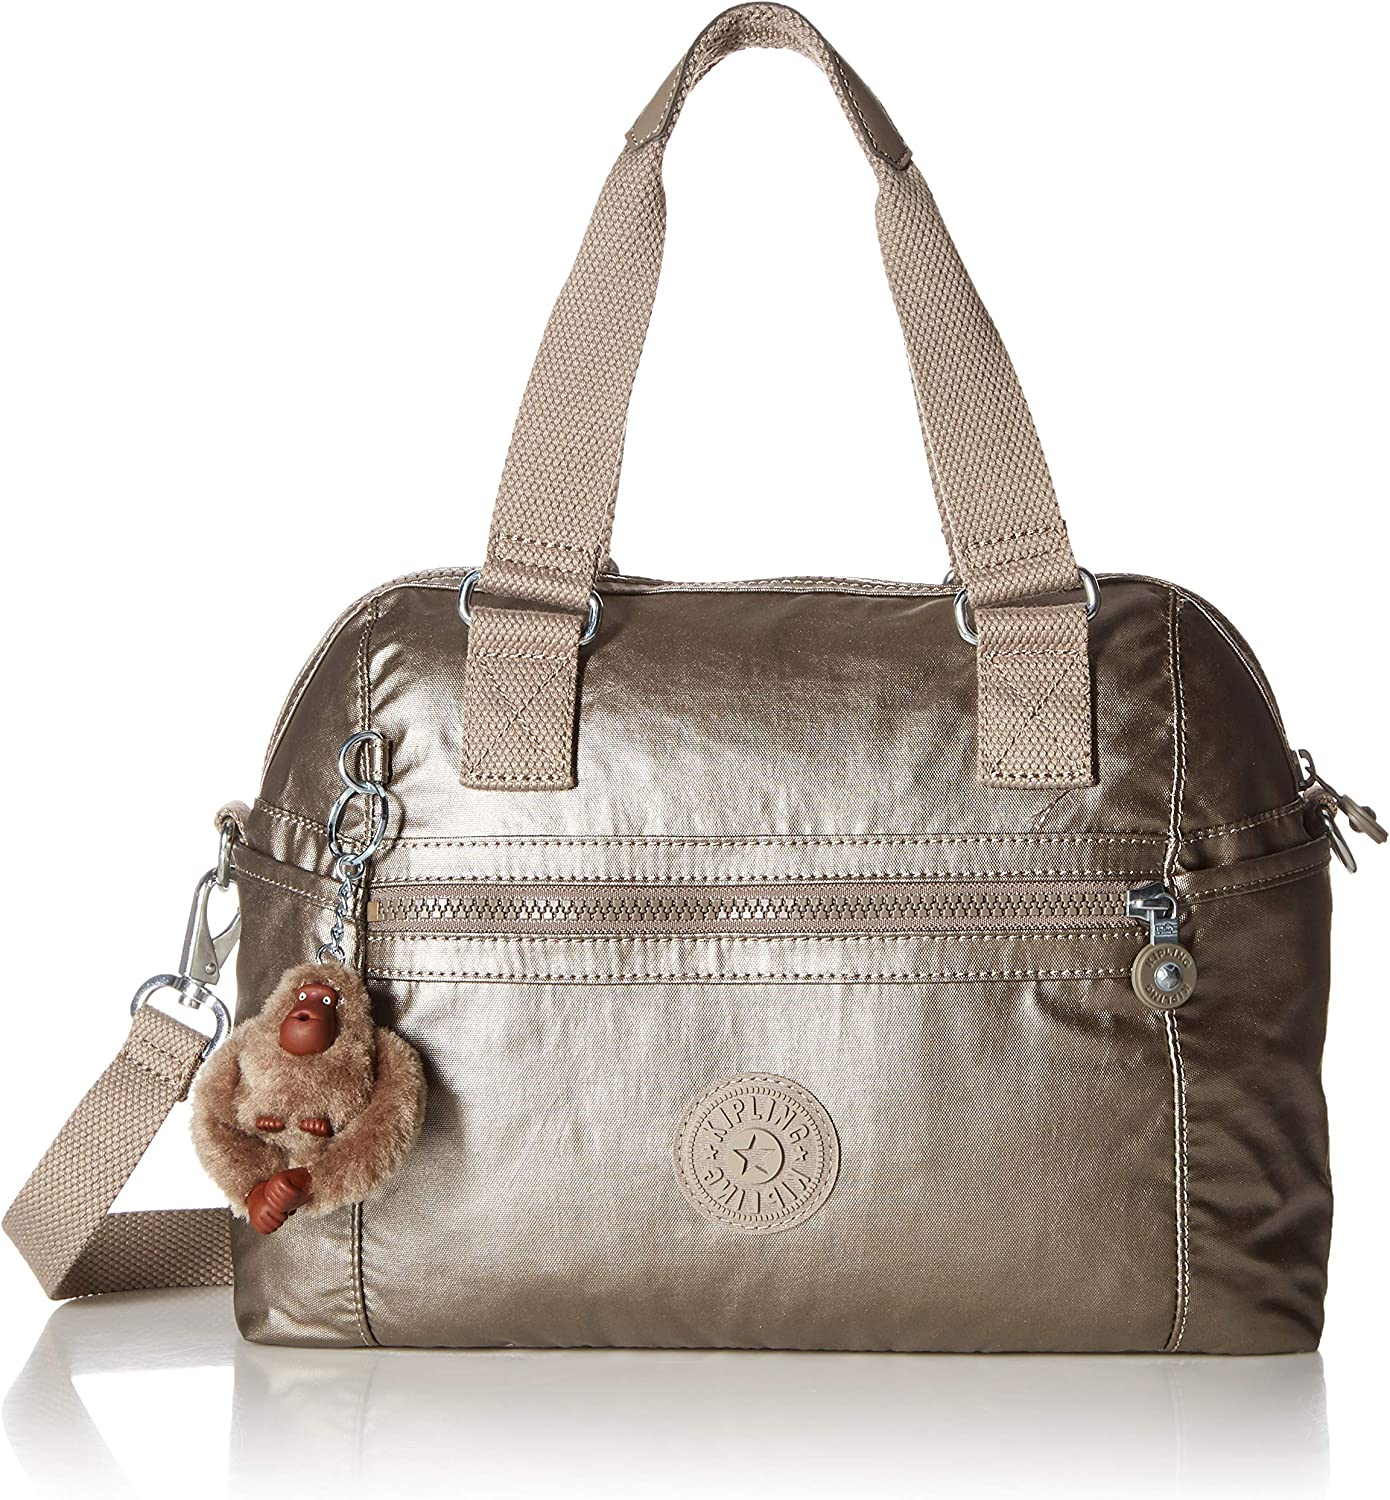 Kipling Cora Handbag, Metallic Pewter, One Size: Handbags